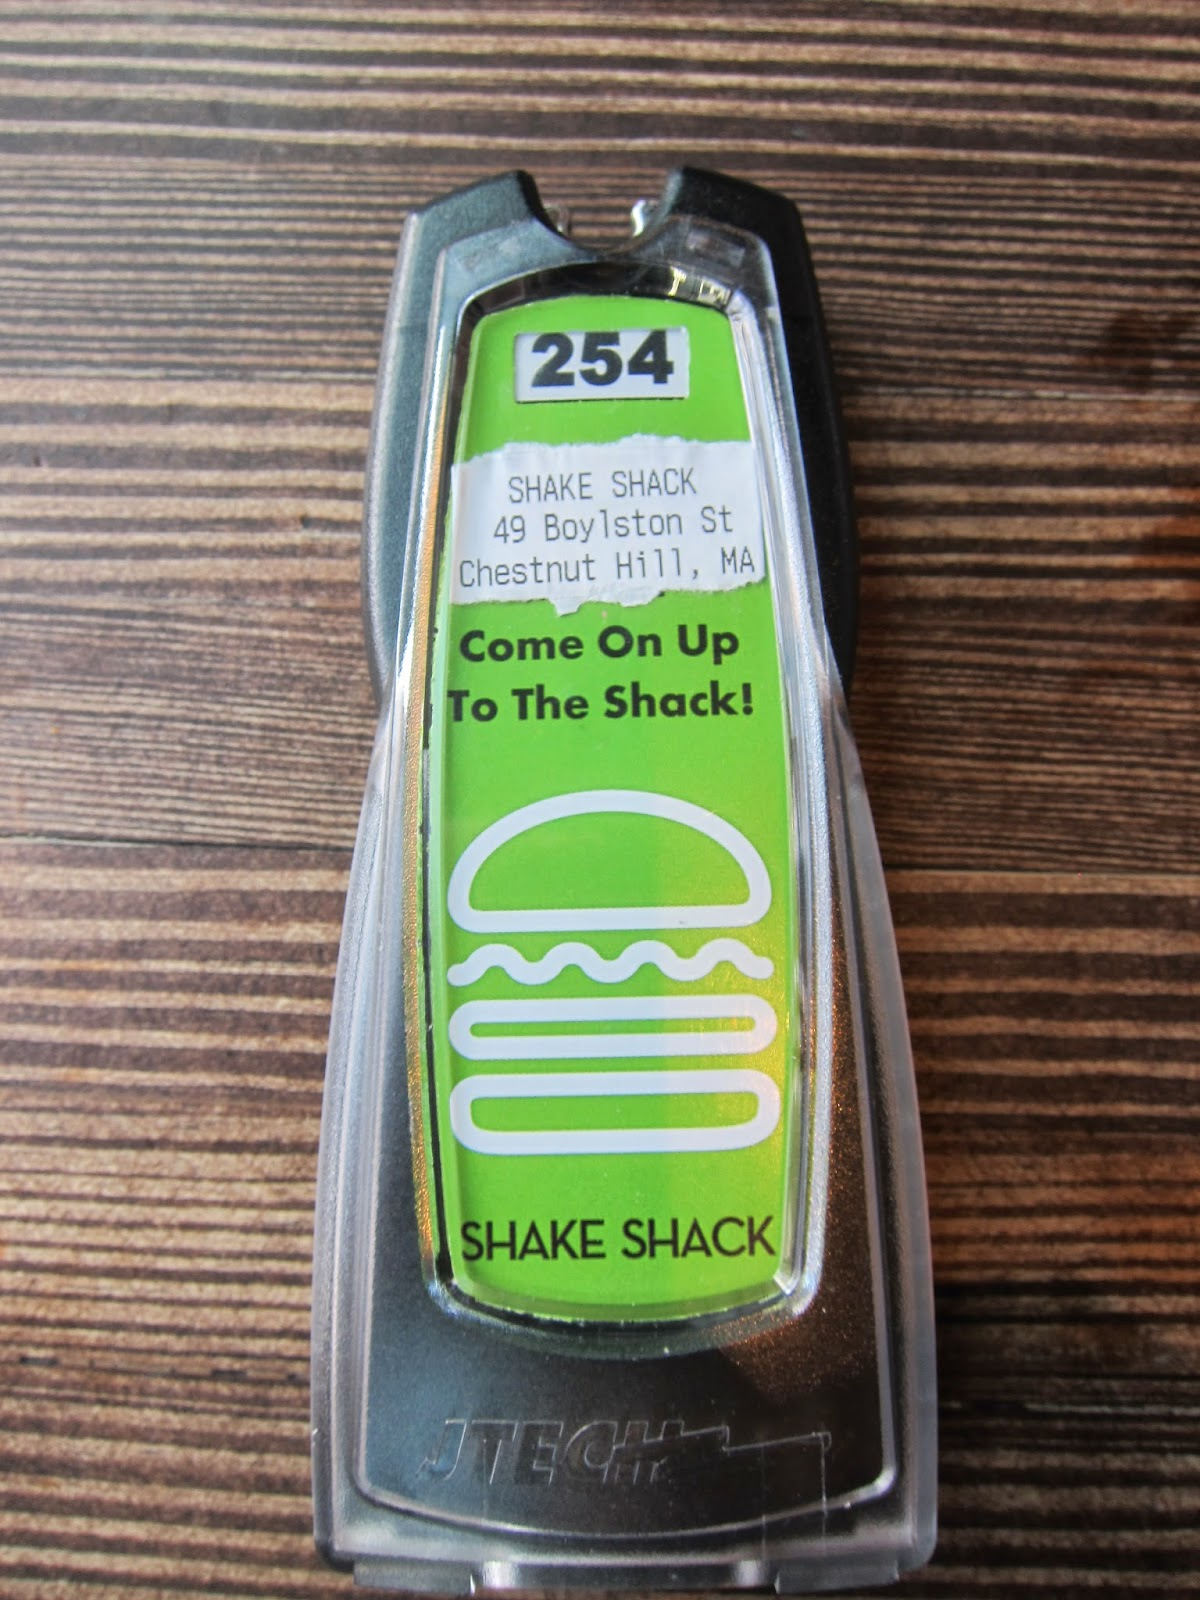 Mami-Eggroll: Shake Shack and Showcase SuperLux in Chestnut Hill